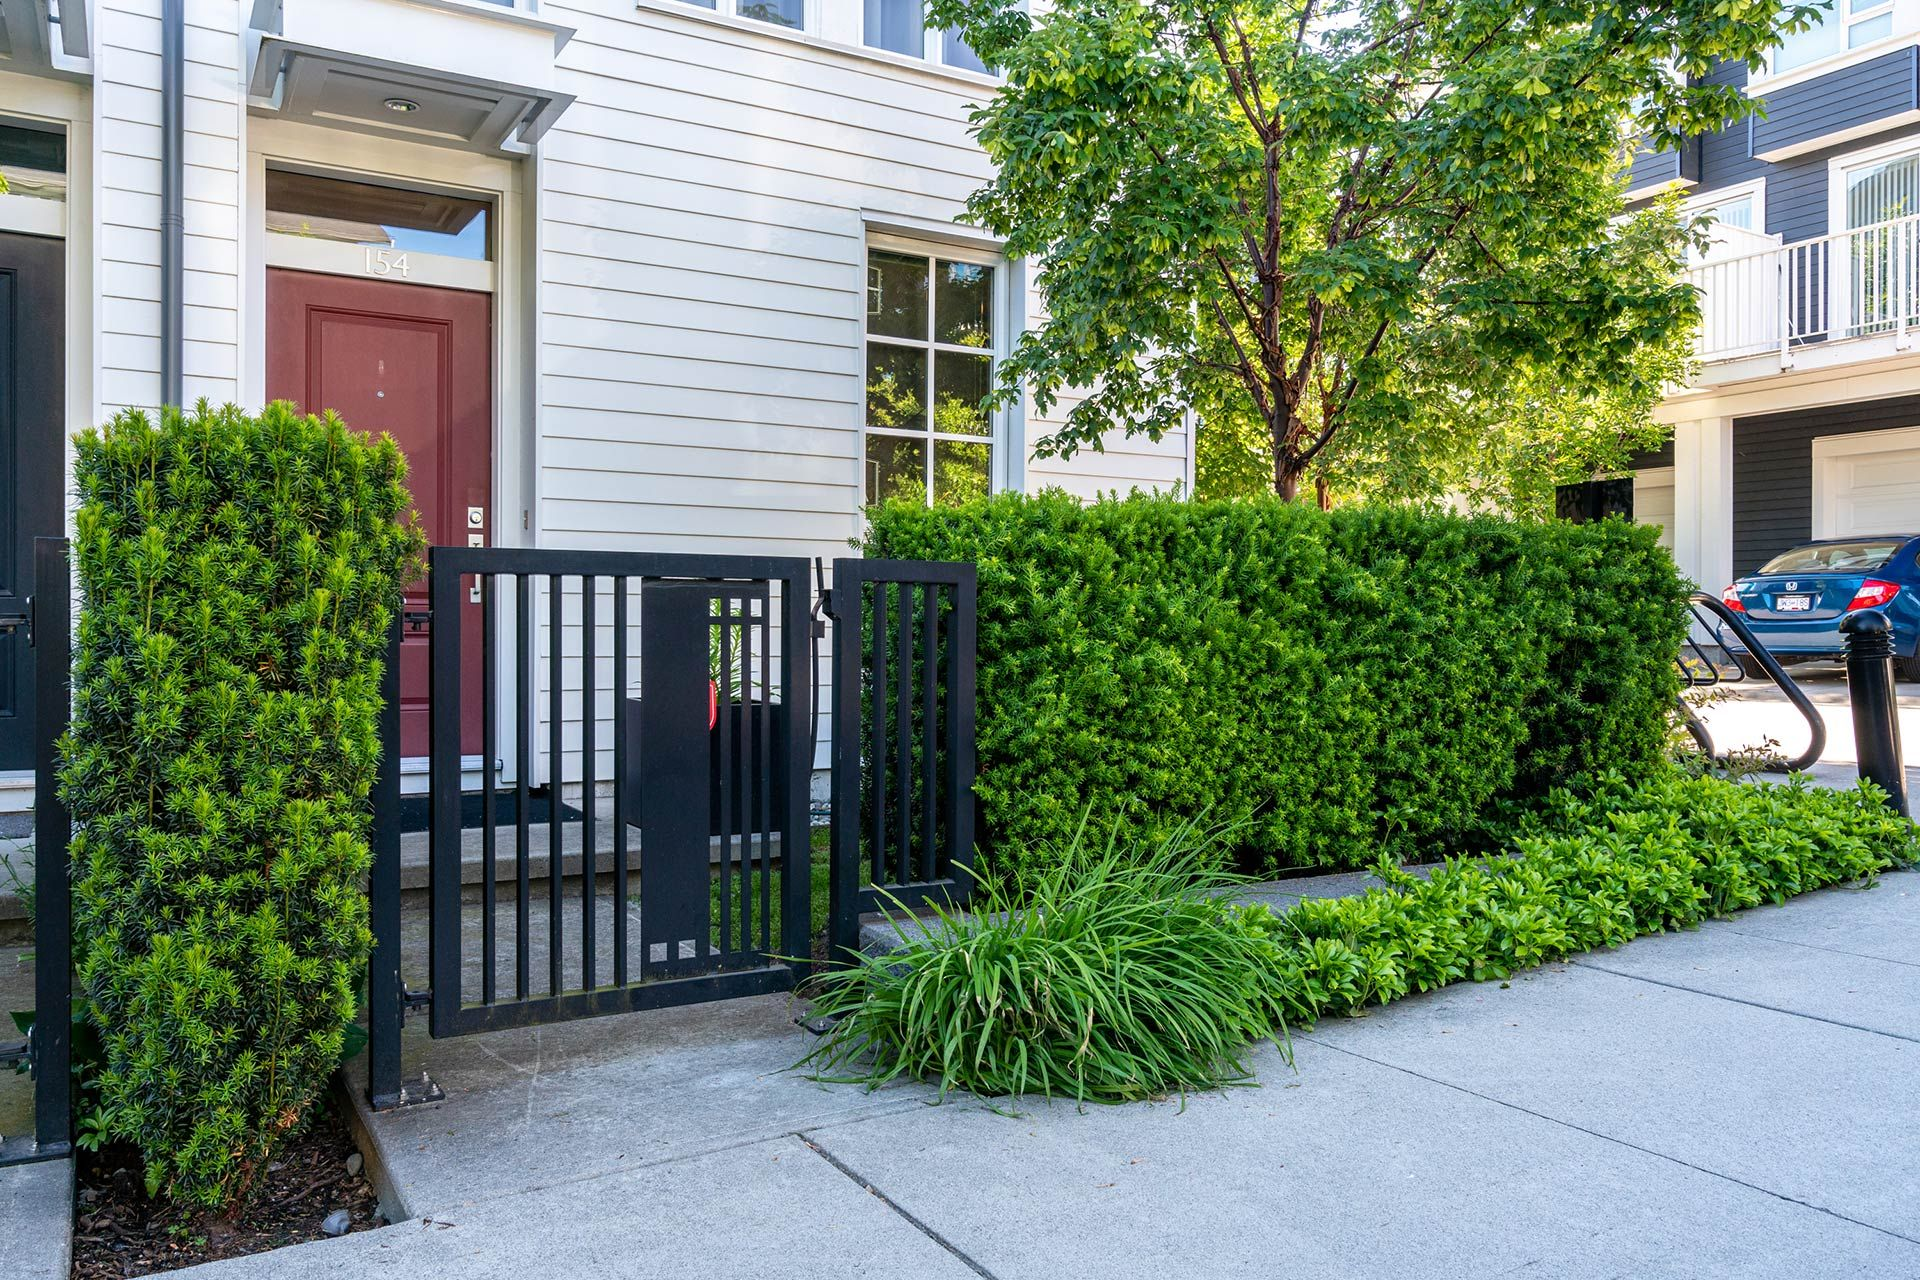 """Photo 41: Photos: 154 548 FOSTER Avenue in Coquitlam: Coquitlam West Townhouse for sale in """"BLACK + WHITE"""" : MLS®# R2587208"""